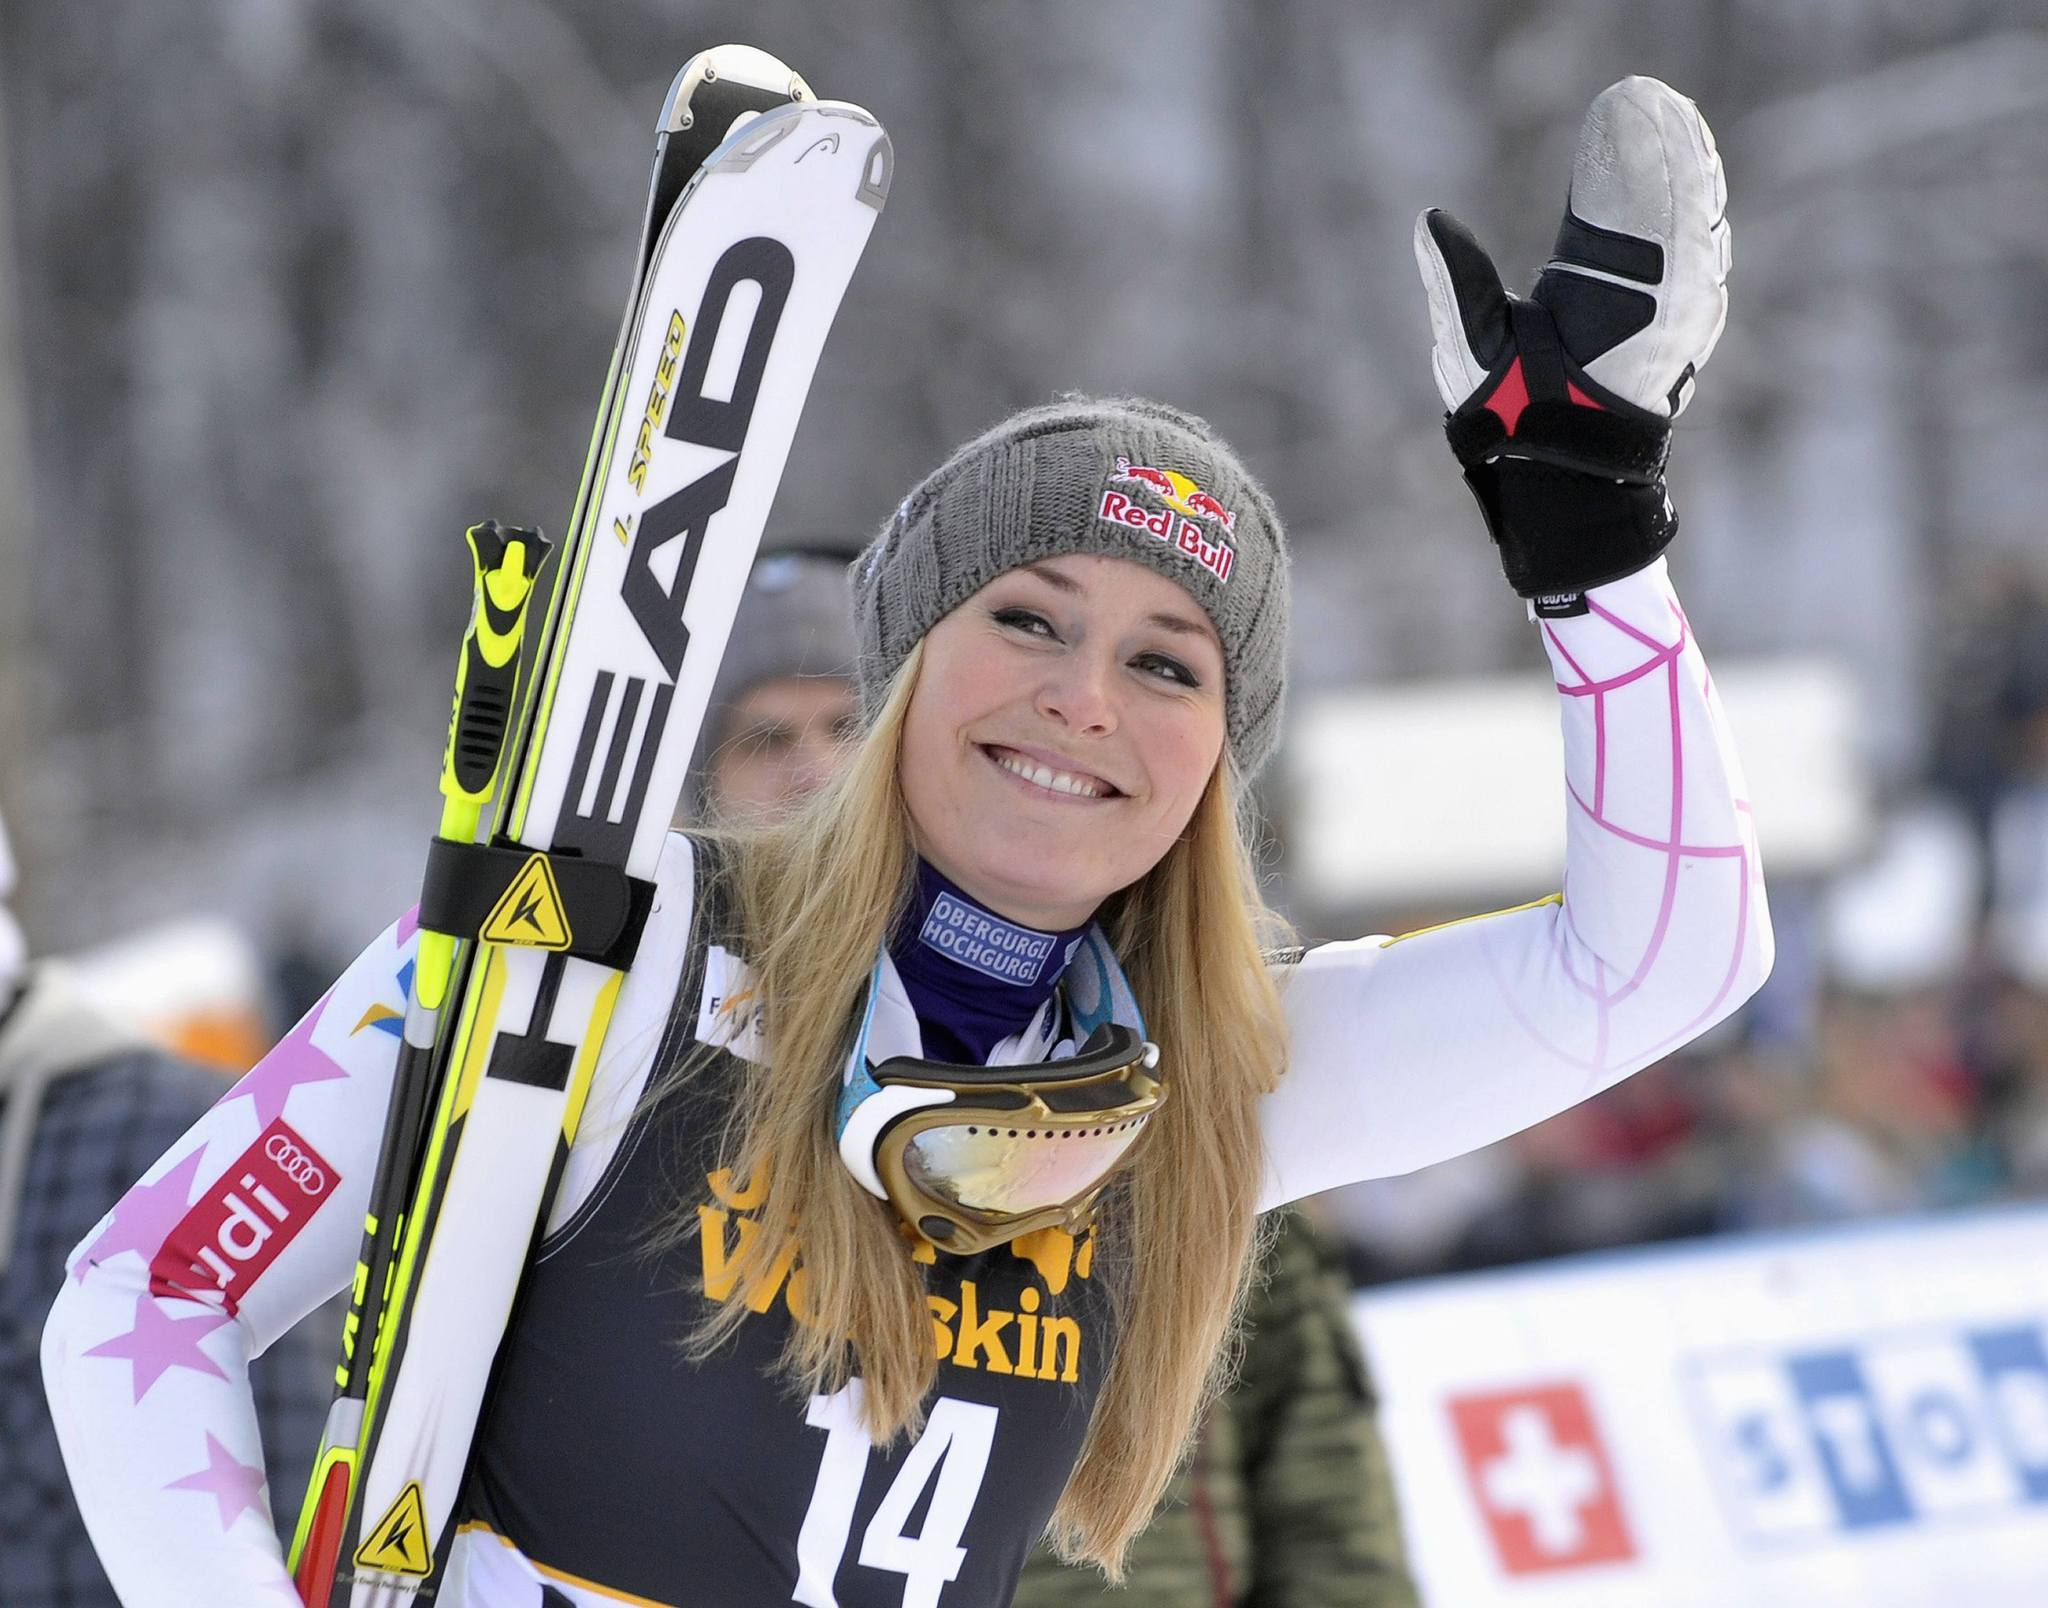 Lindsey Vonn of the U.S. reacts after winning the World Cup Women's Giant Slalom race in Maribor.